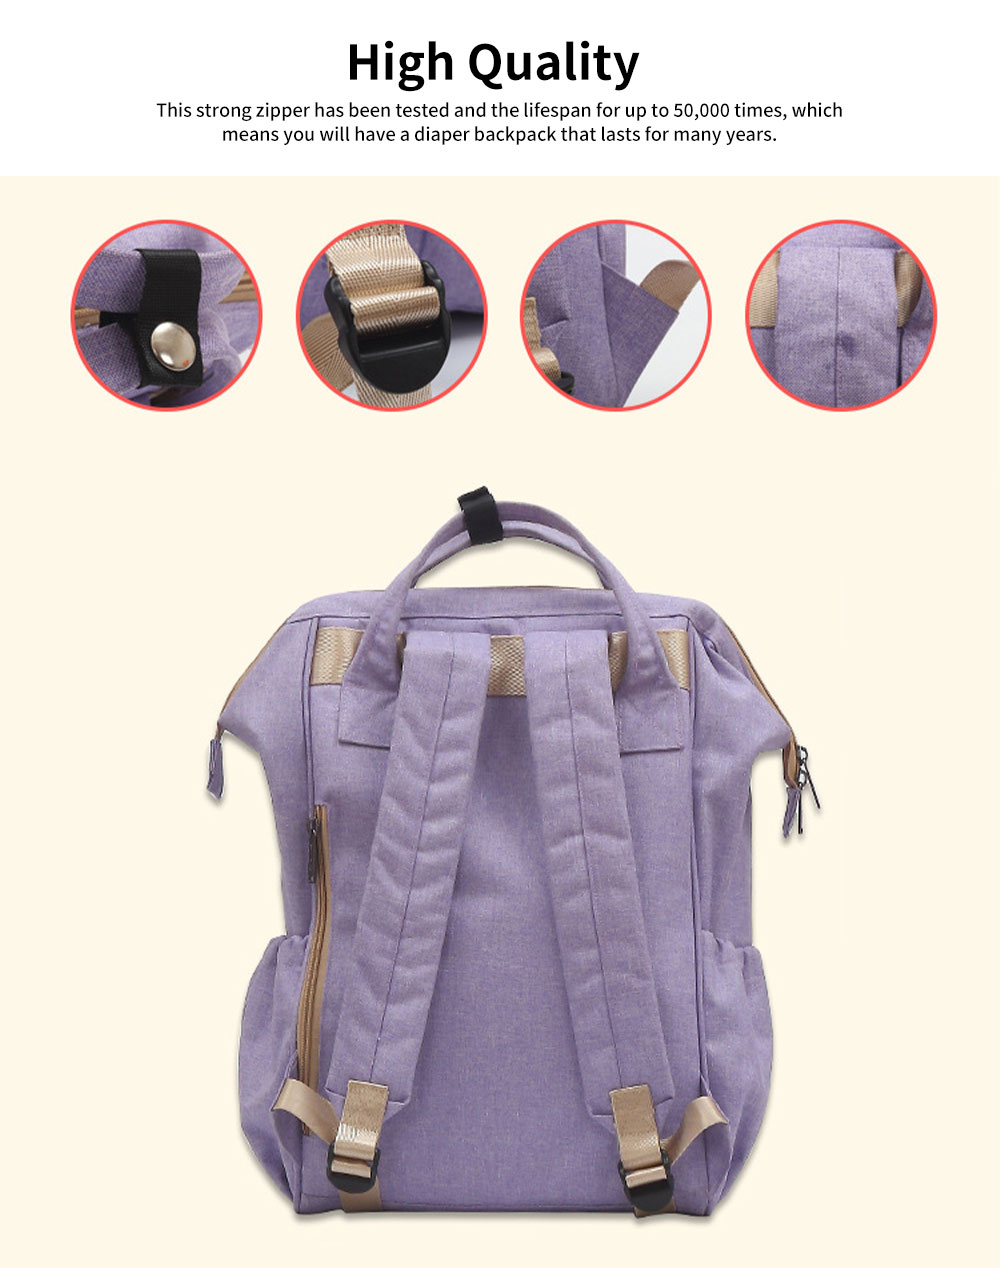 Large Baby Diaper Backpack Multi-Functional, Waterproof, Stylish and Durable Travel Diaper Bags for Mom, Dad 4